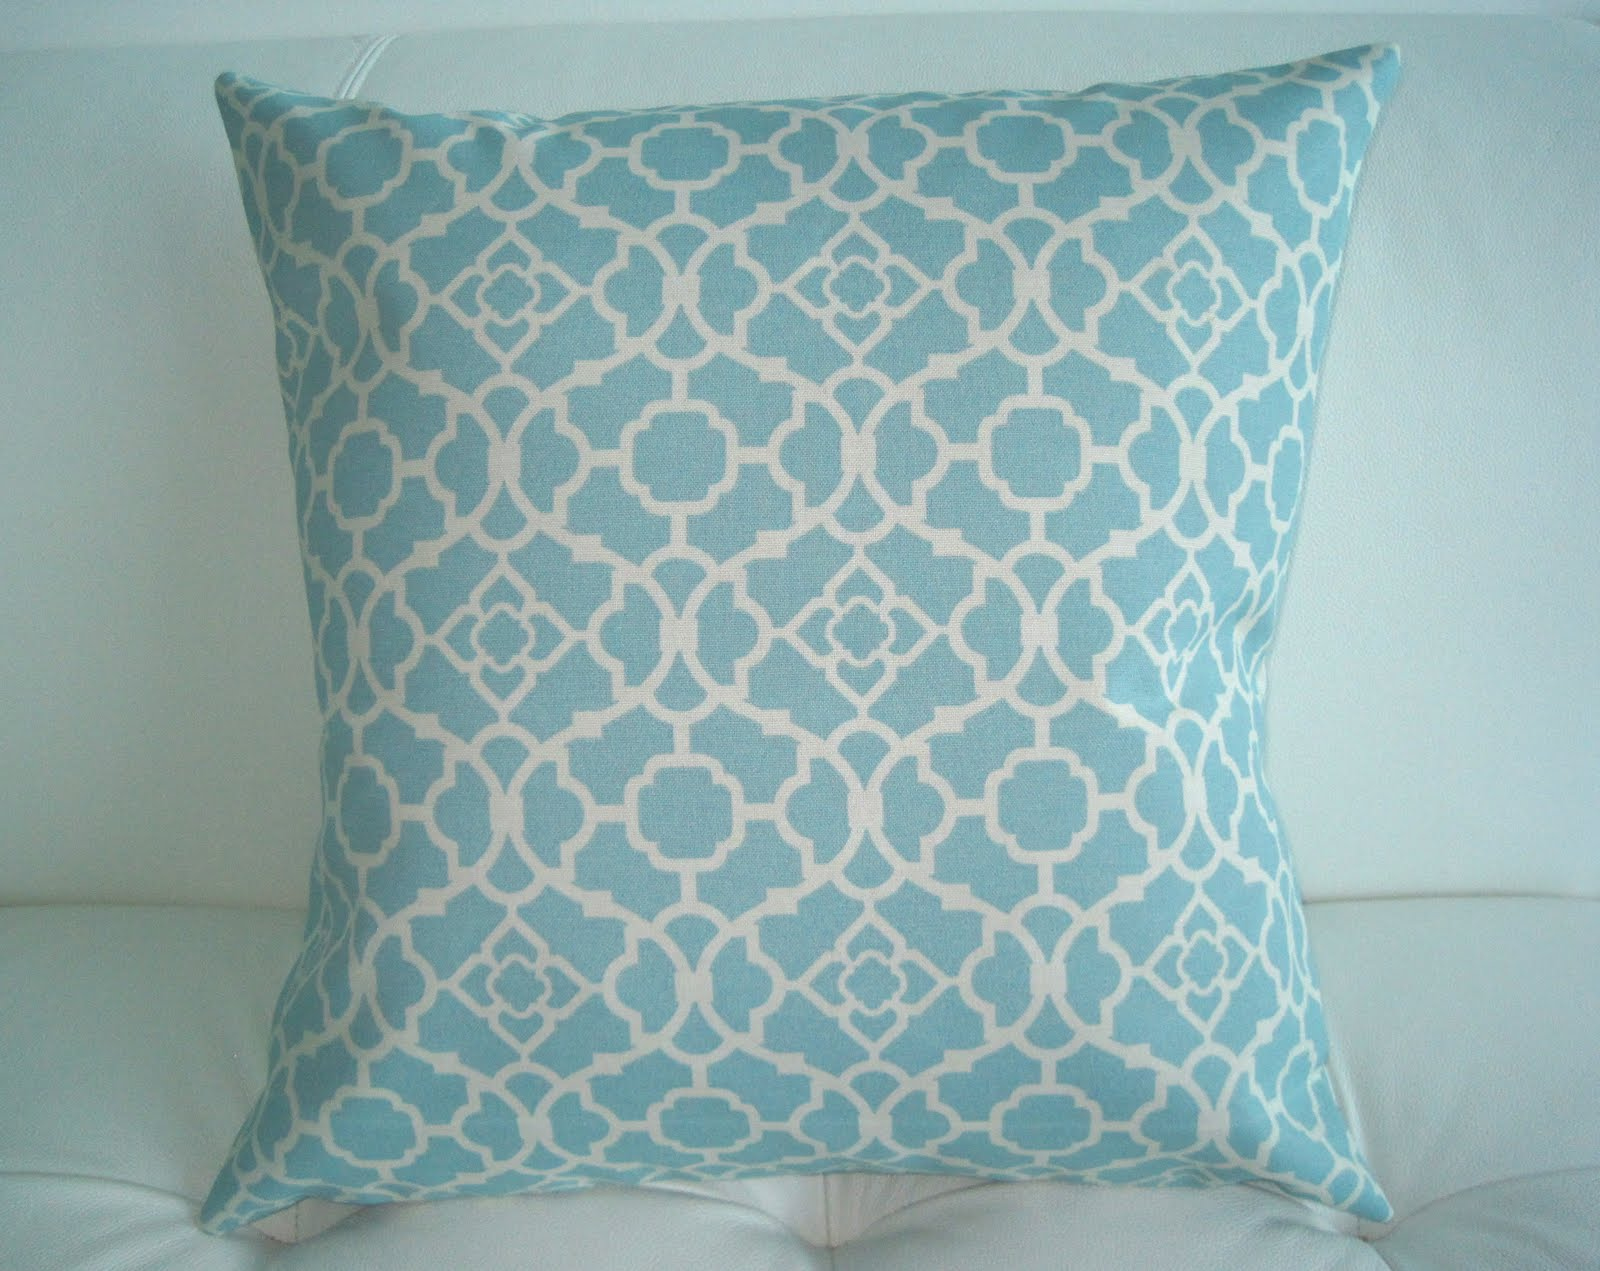 JetSet Coco New Pillow Designs On Etsy